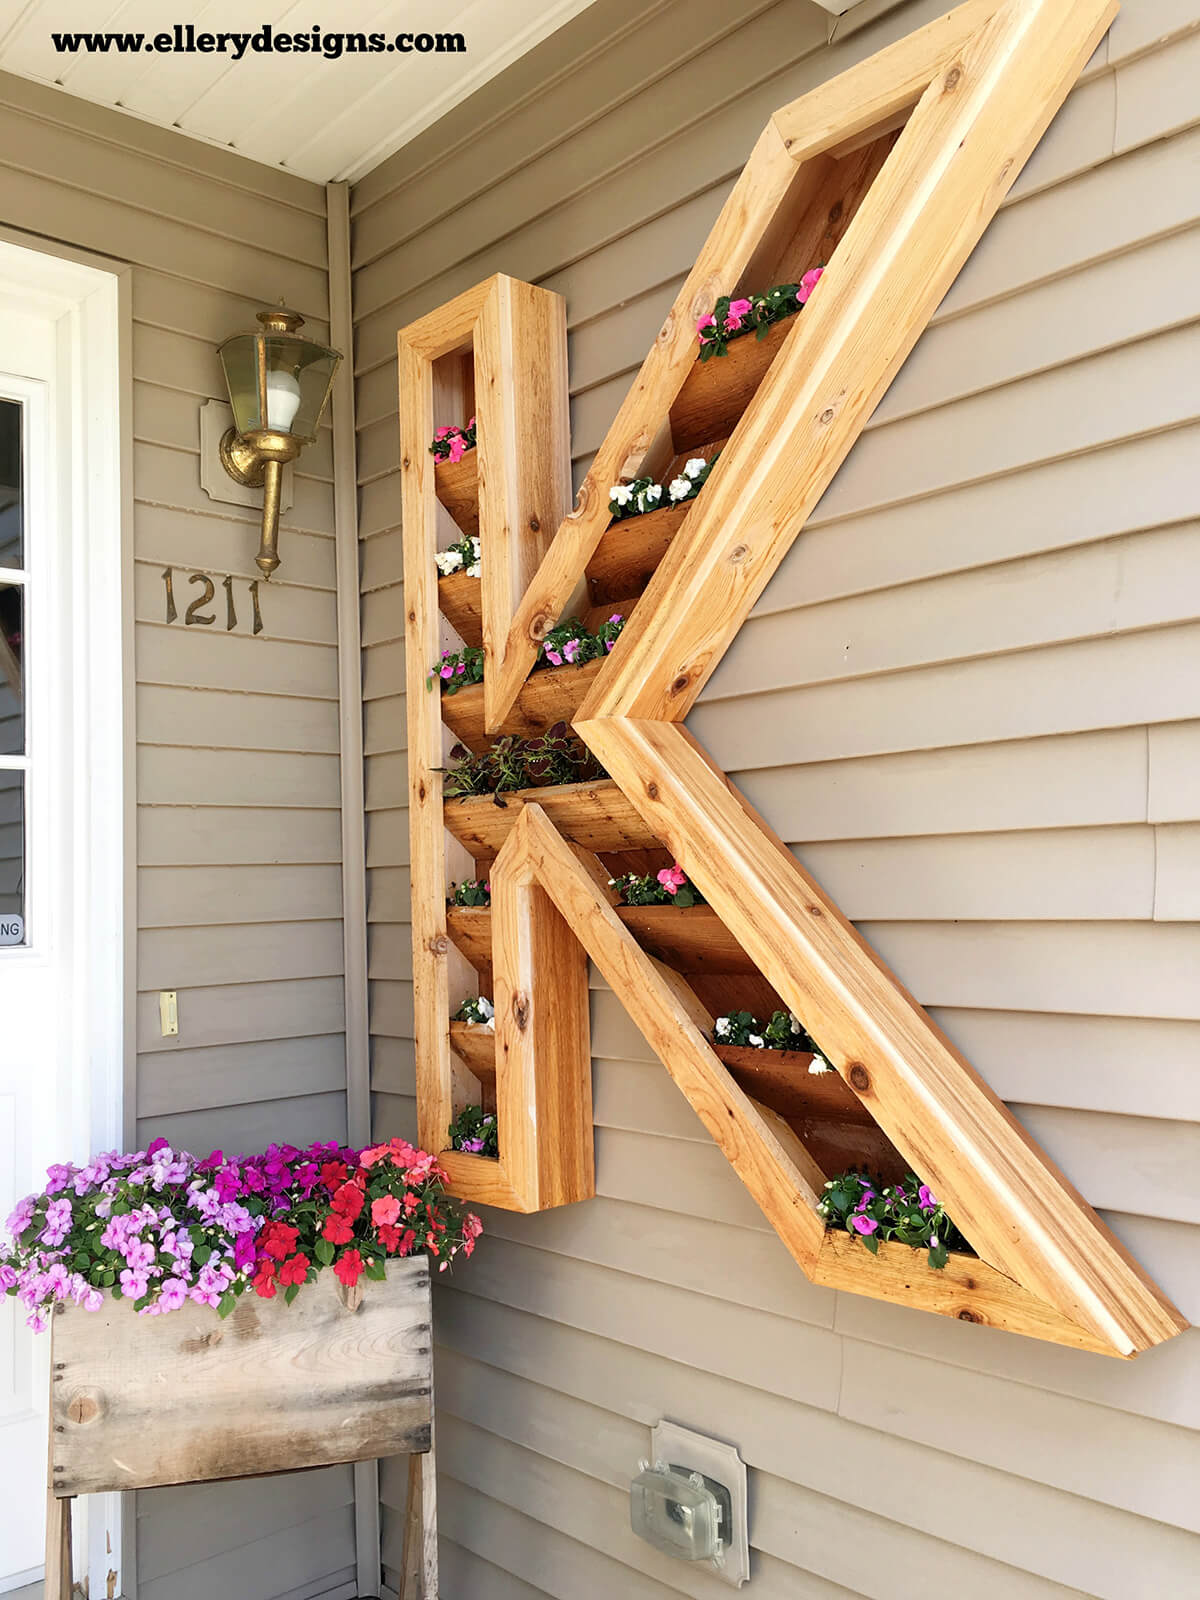 32 Best DIY Pallet and Wood Planter Box Ideas and Designs ... on Pallet Design Ideas  id=54269